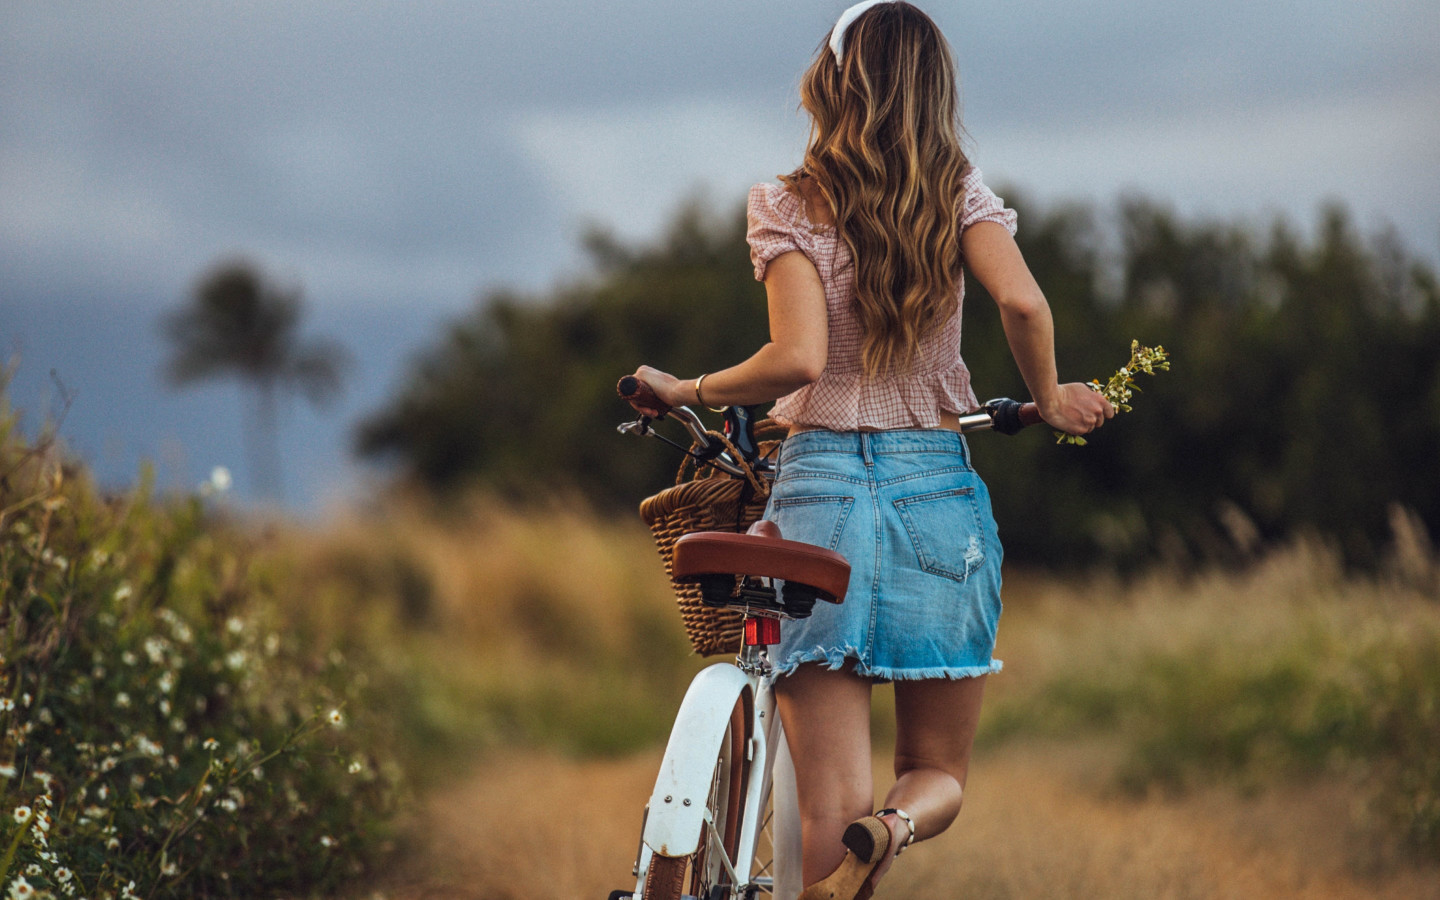 Lady with her retro bike wallpaper 1440x900